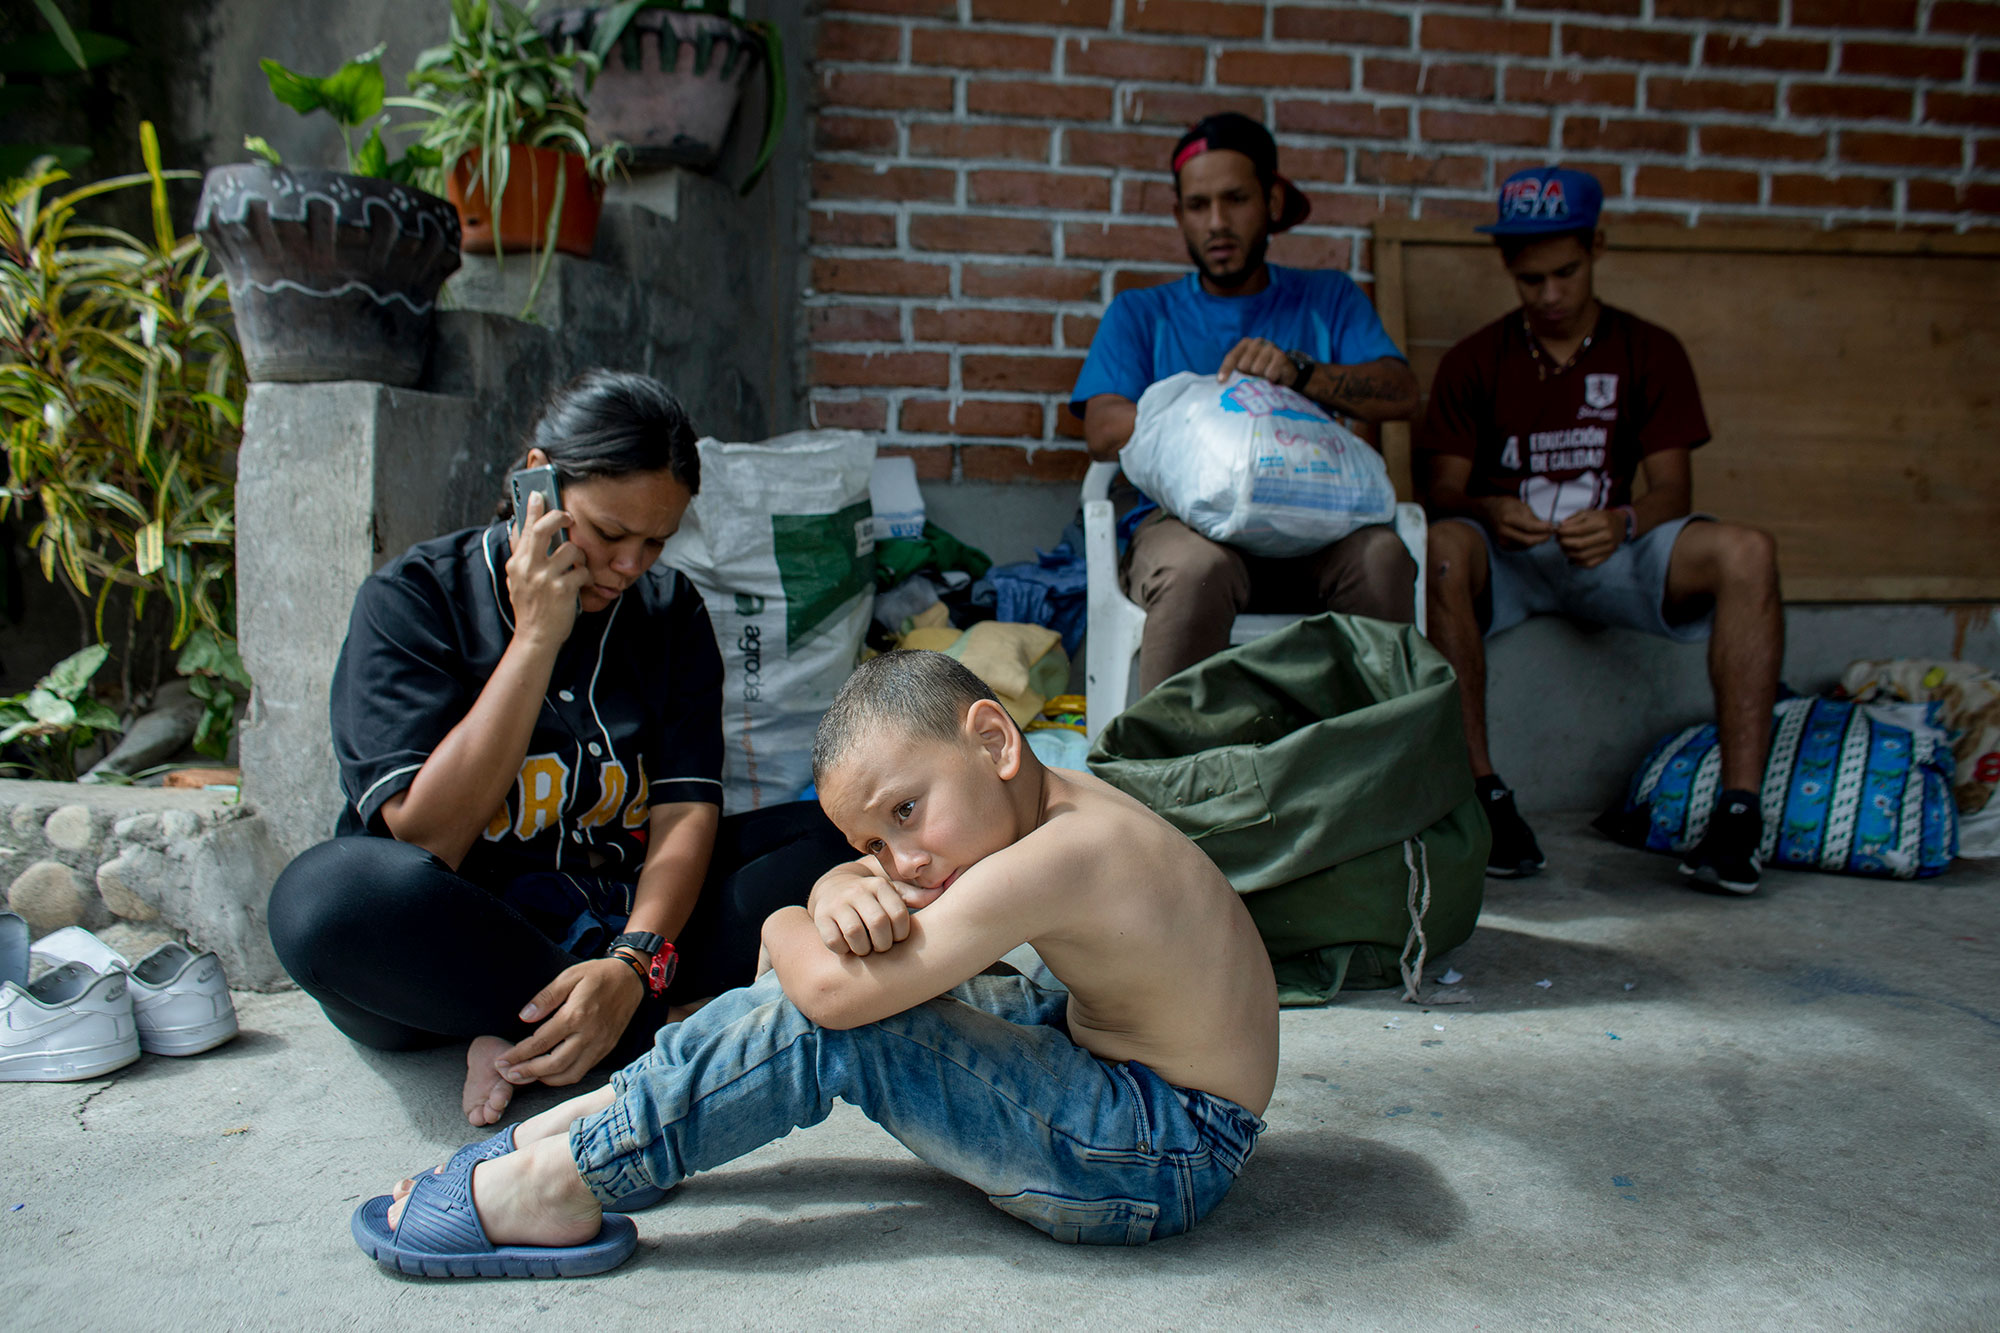 Génesis and her son are among the 4.6 million who have fled Venezuela due to instability, hunger and poverty. All photos: Josh Estey/CARE